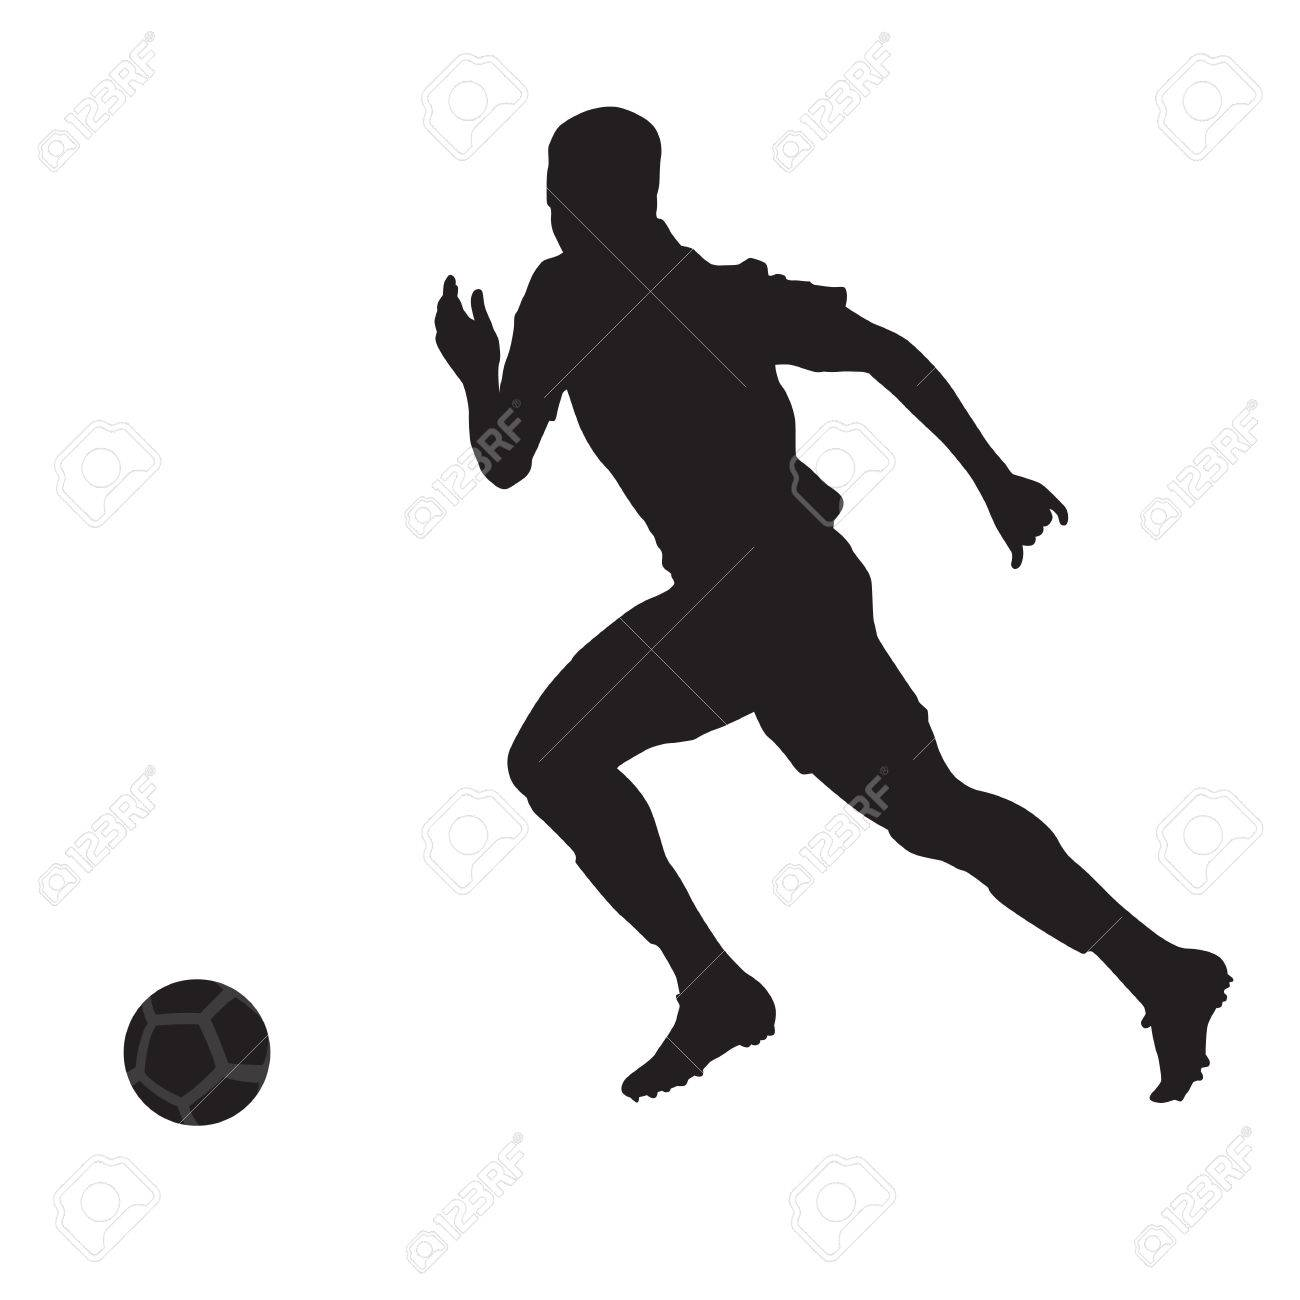 running soccer player vector silhouette side view royalty free rh 123rf com female soccer player vector soccer player vector silhouette